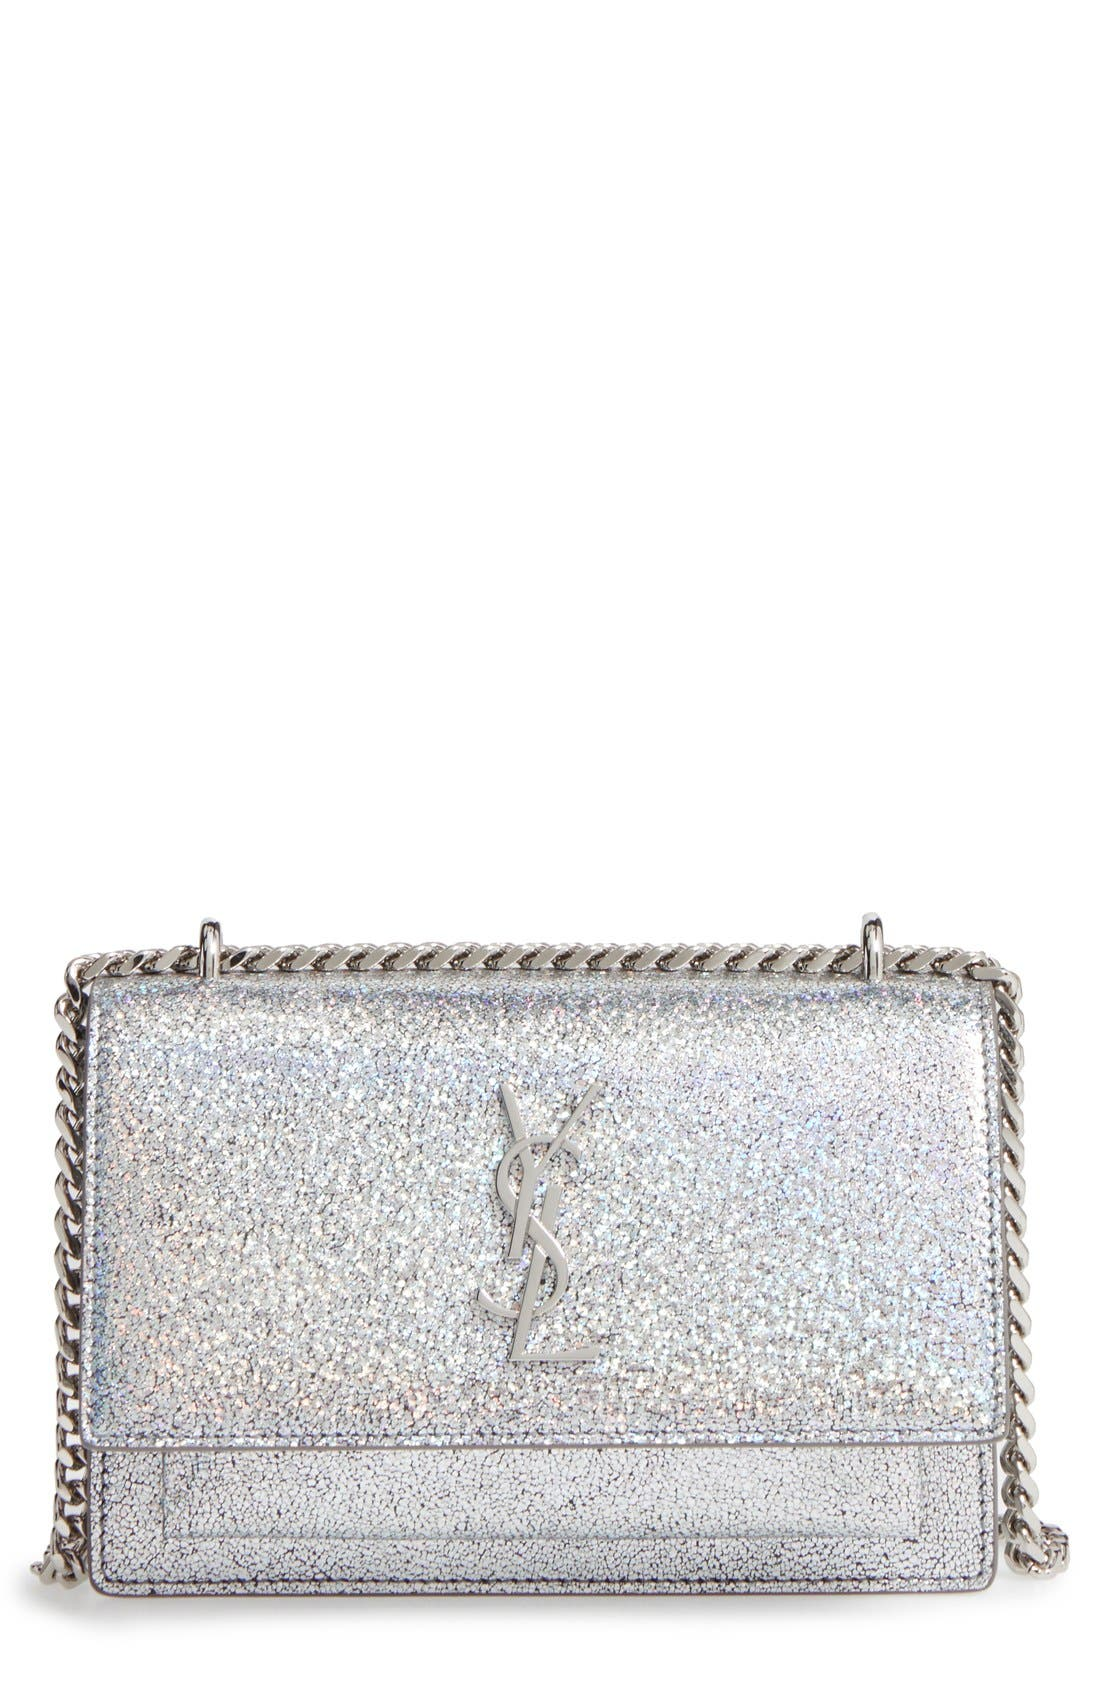 SAINT LAURENT Mini Sunset Crackle Metallic Leather Crossbody